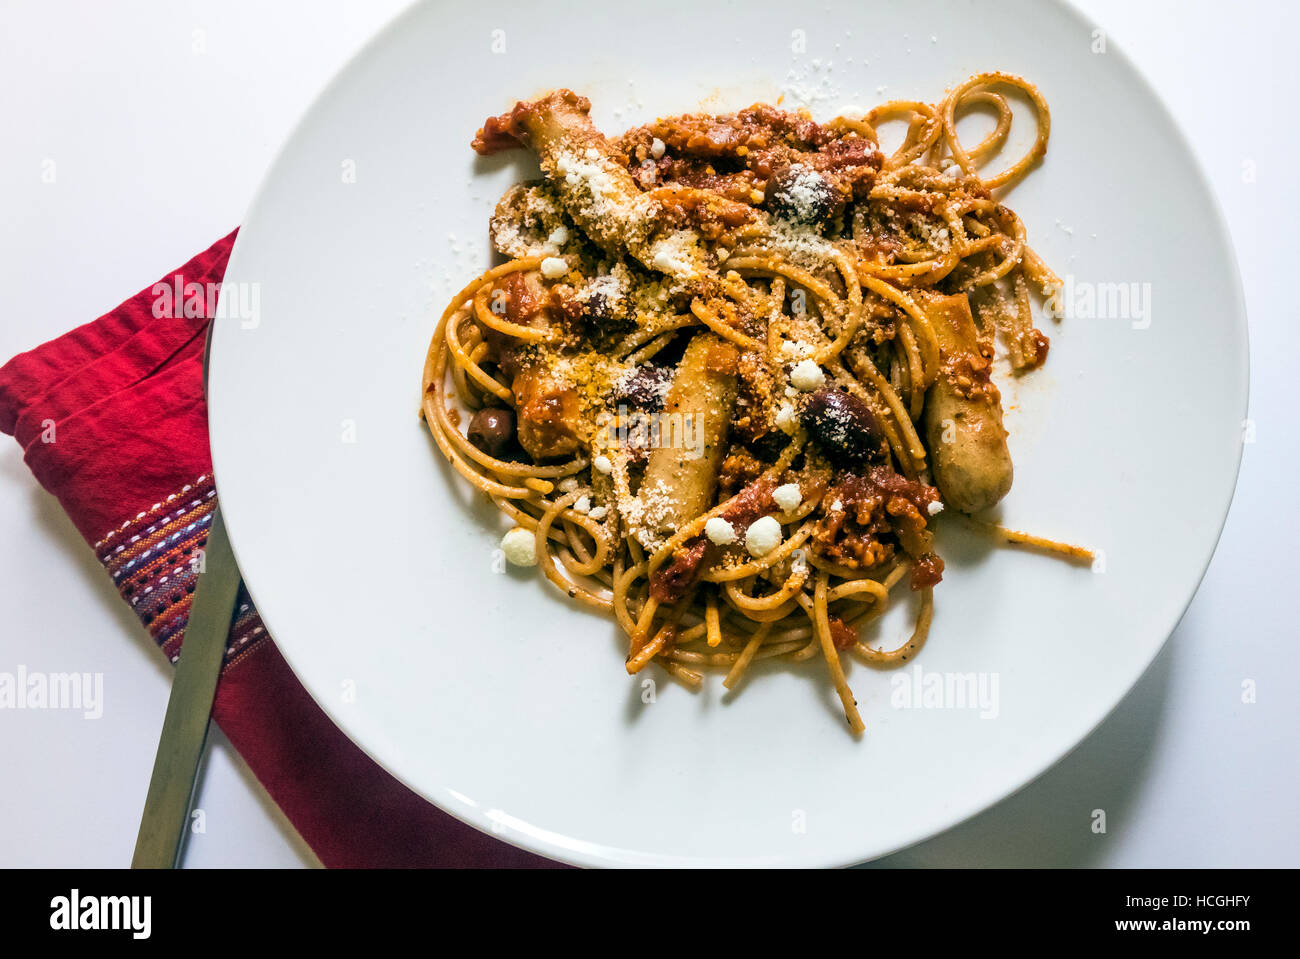 Spaghetti with sausage and olives Stock Photo